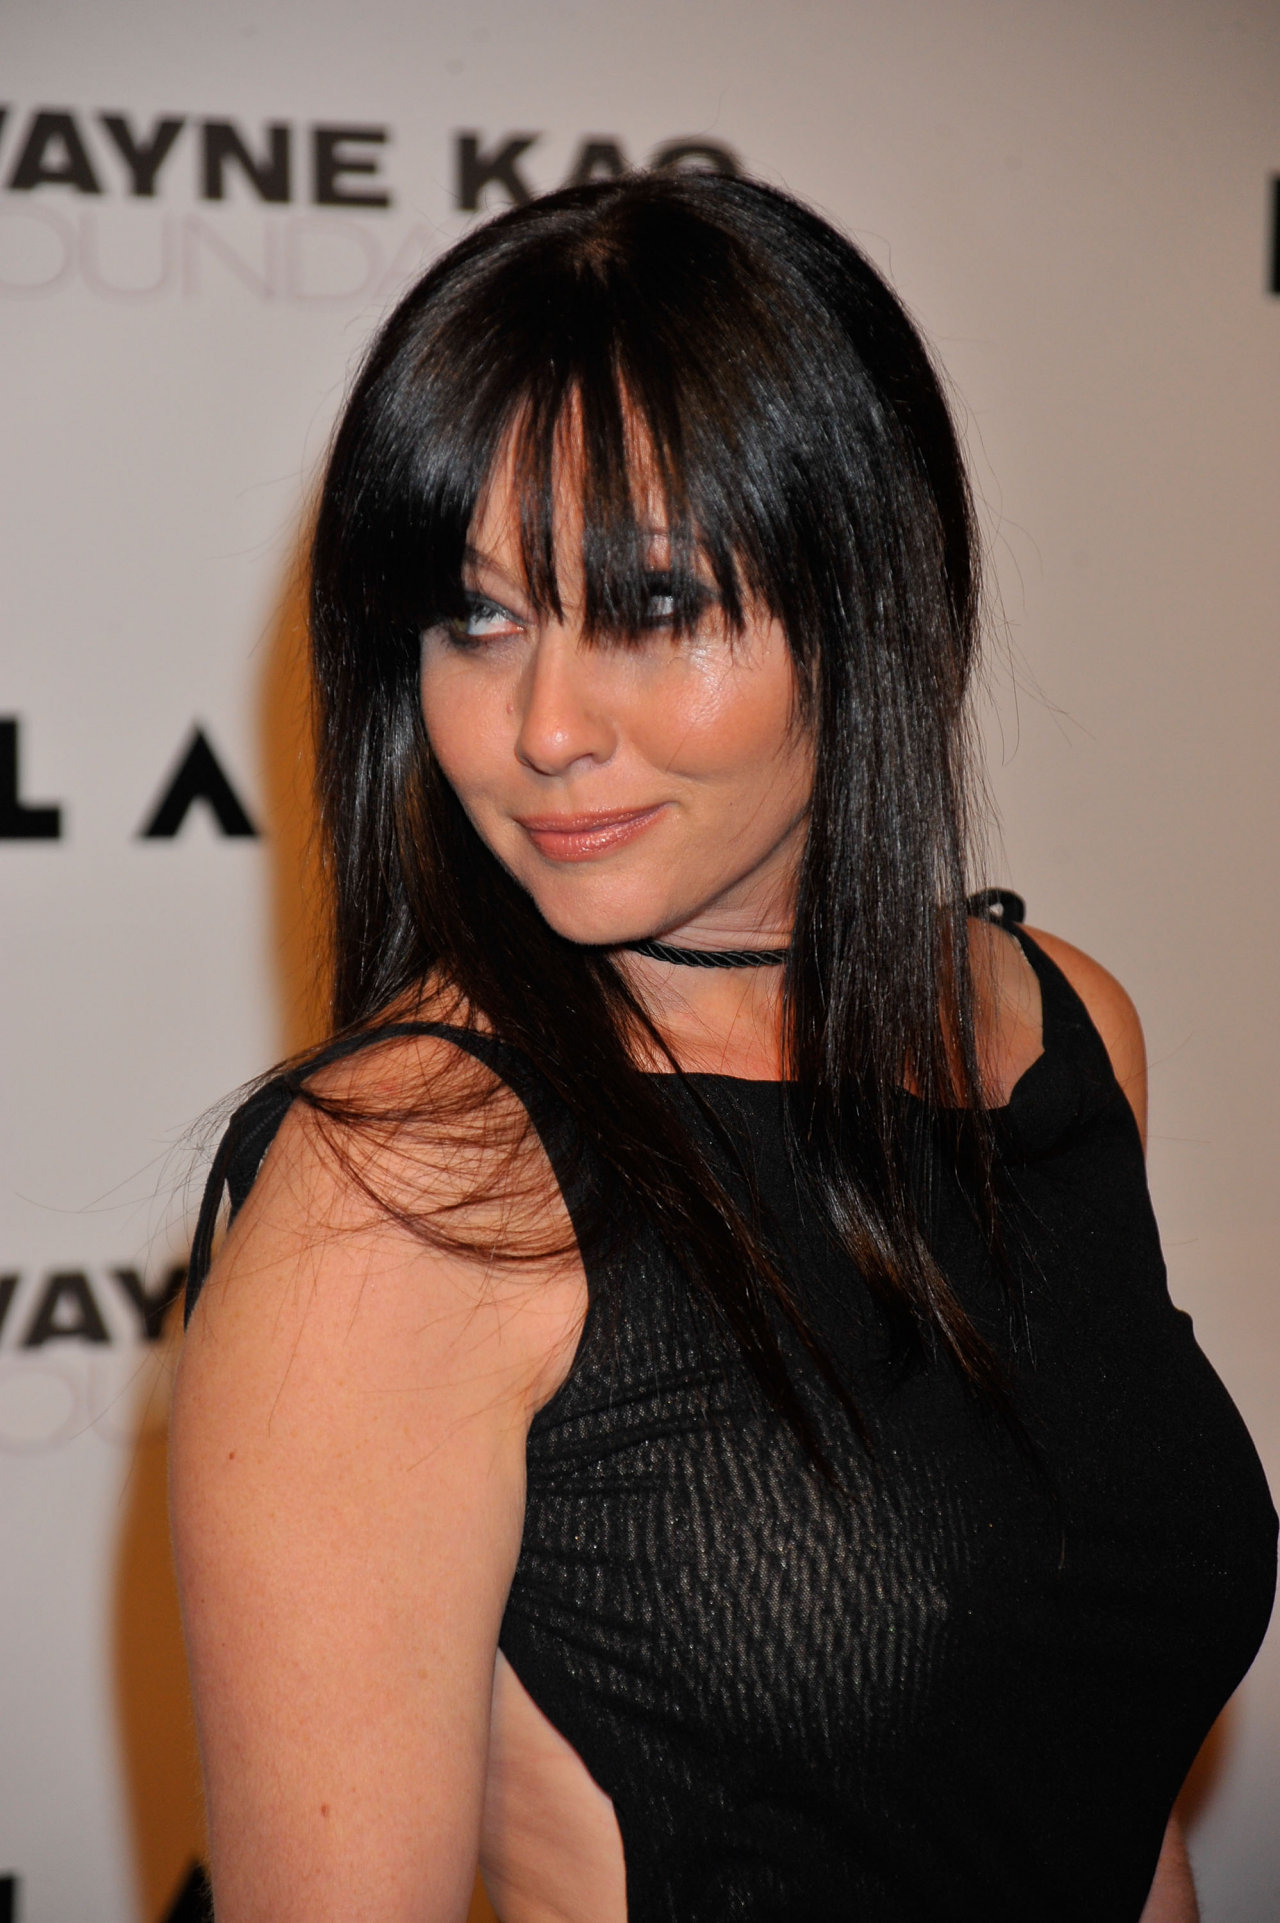 Shannen Doherty. Photo: GettyImages.com